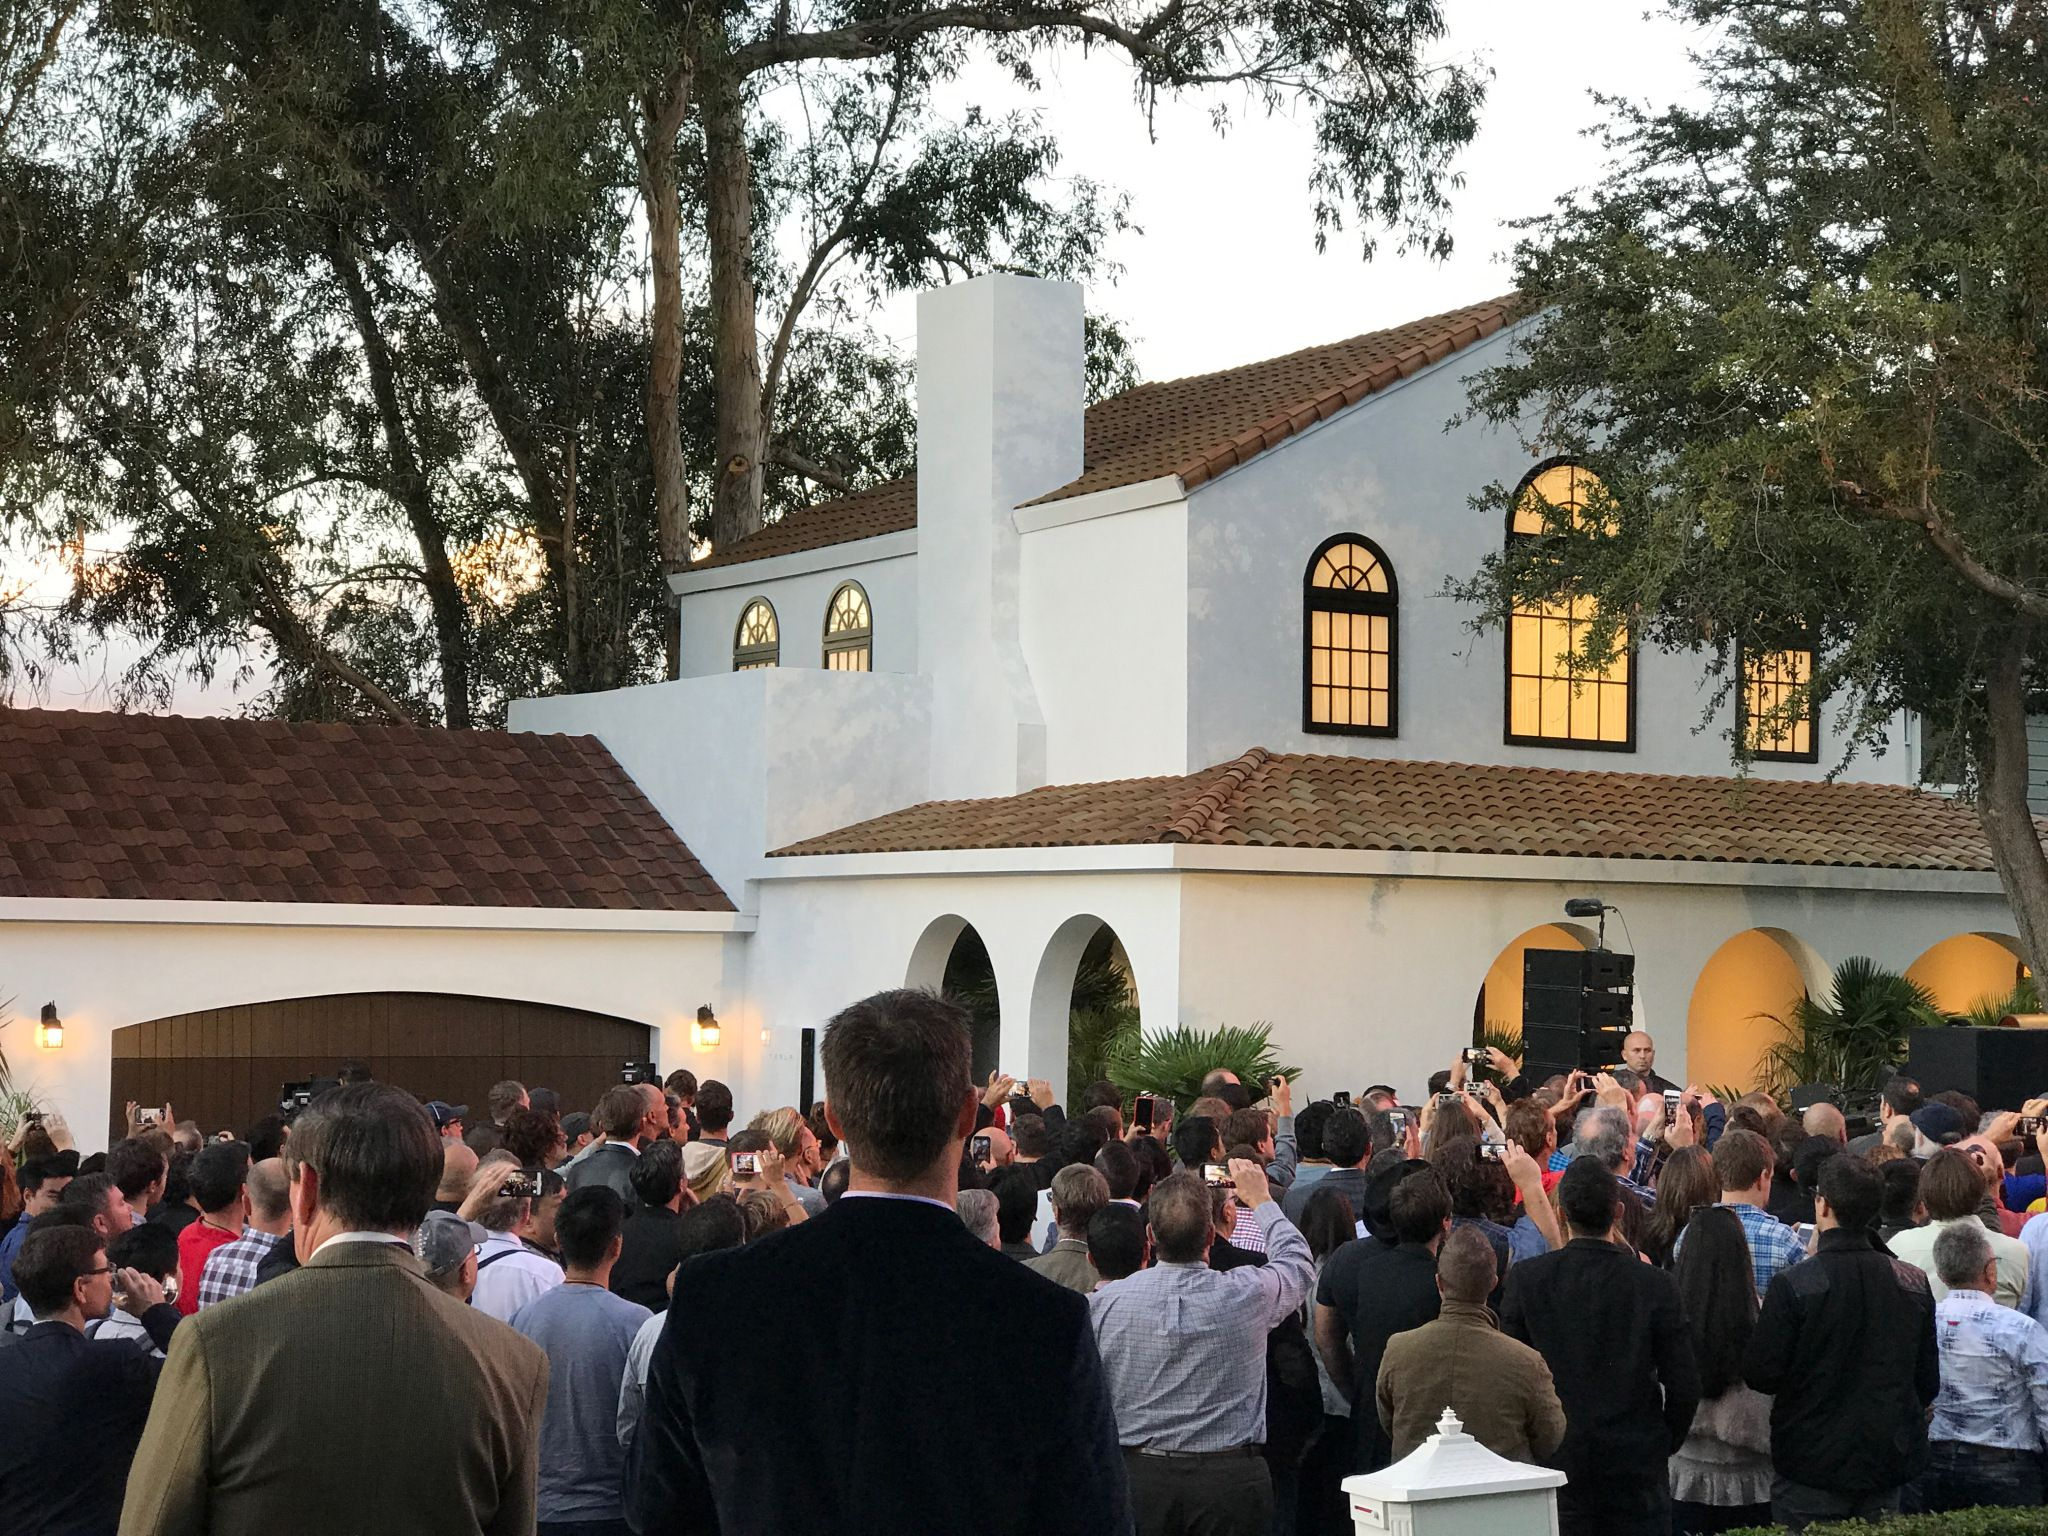 These Are Tesla S Stunning New Solar Roof Tiles For Homes Techcrunch Solar Roof Tesla Solar Roof Best Solar Panels